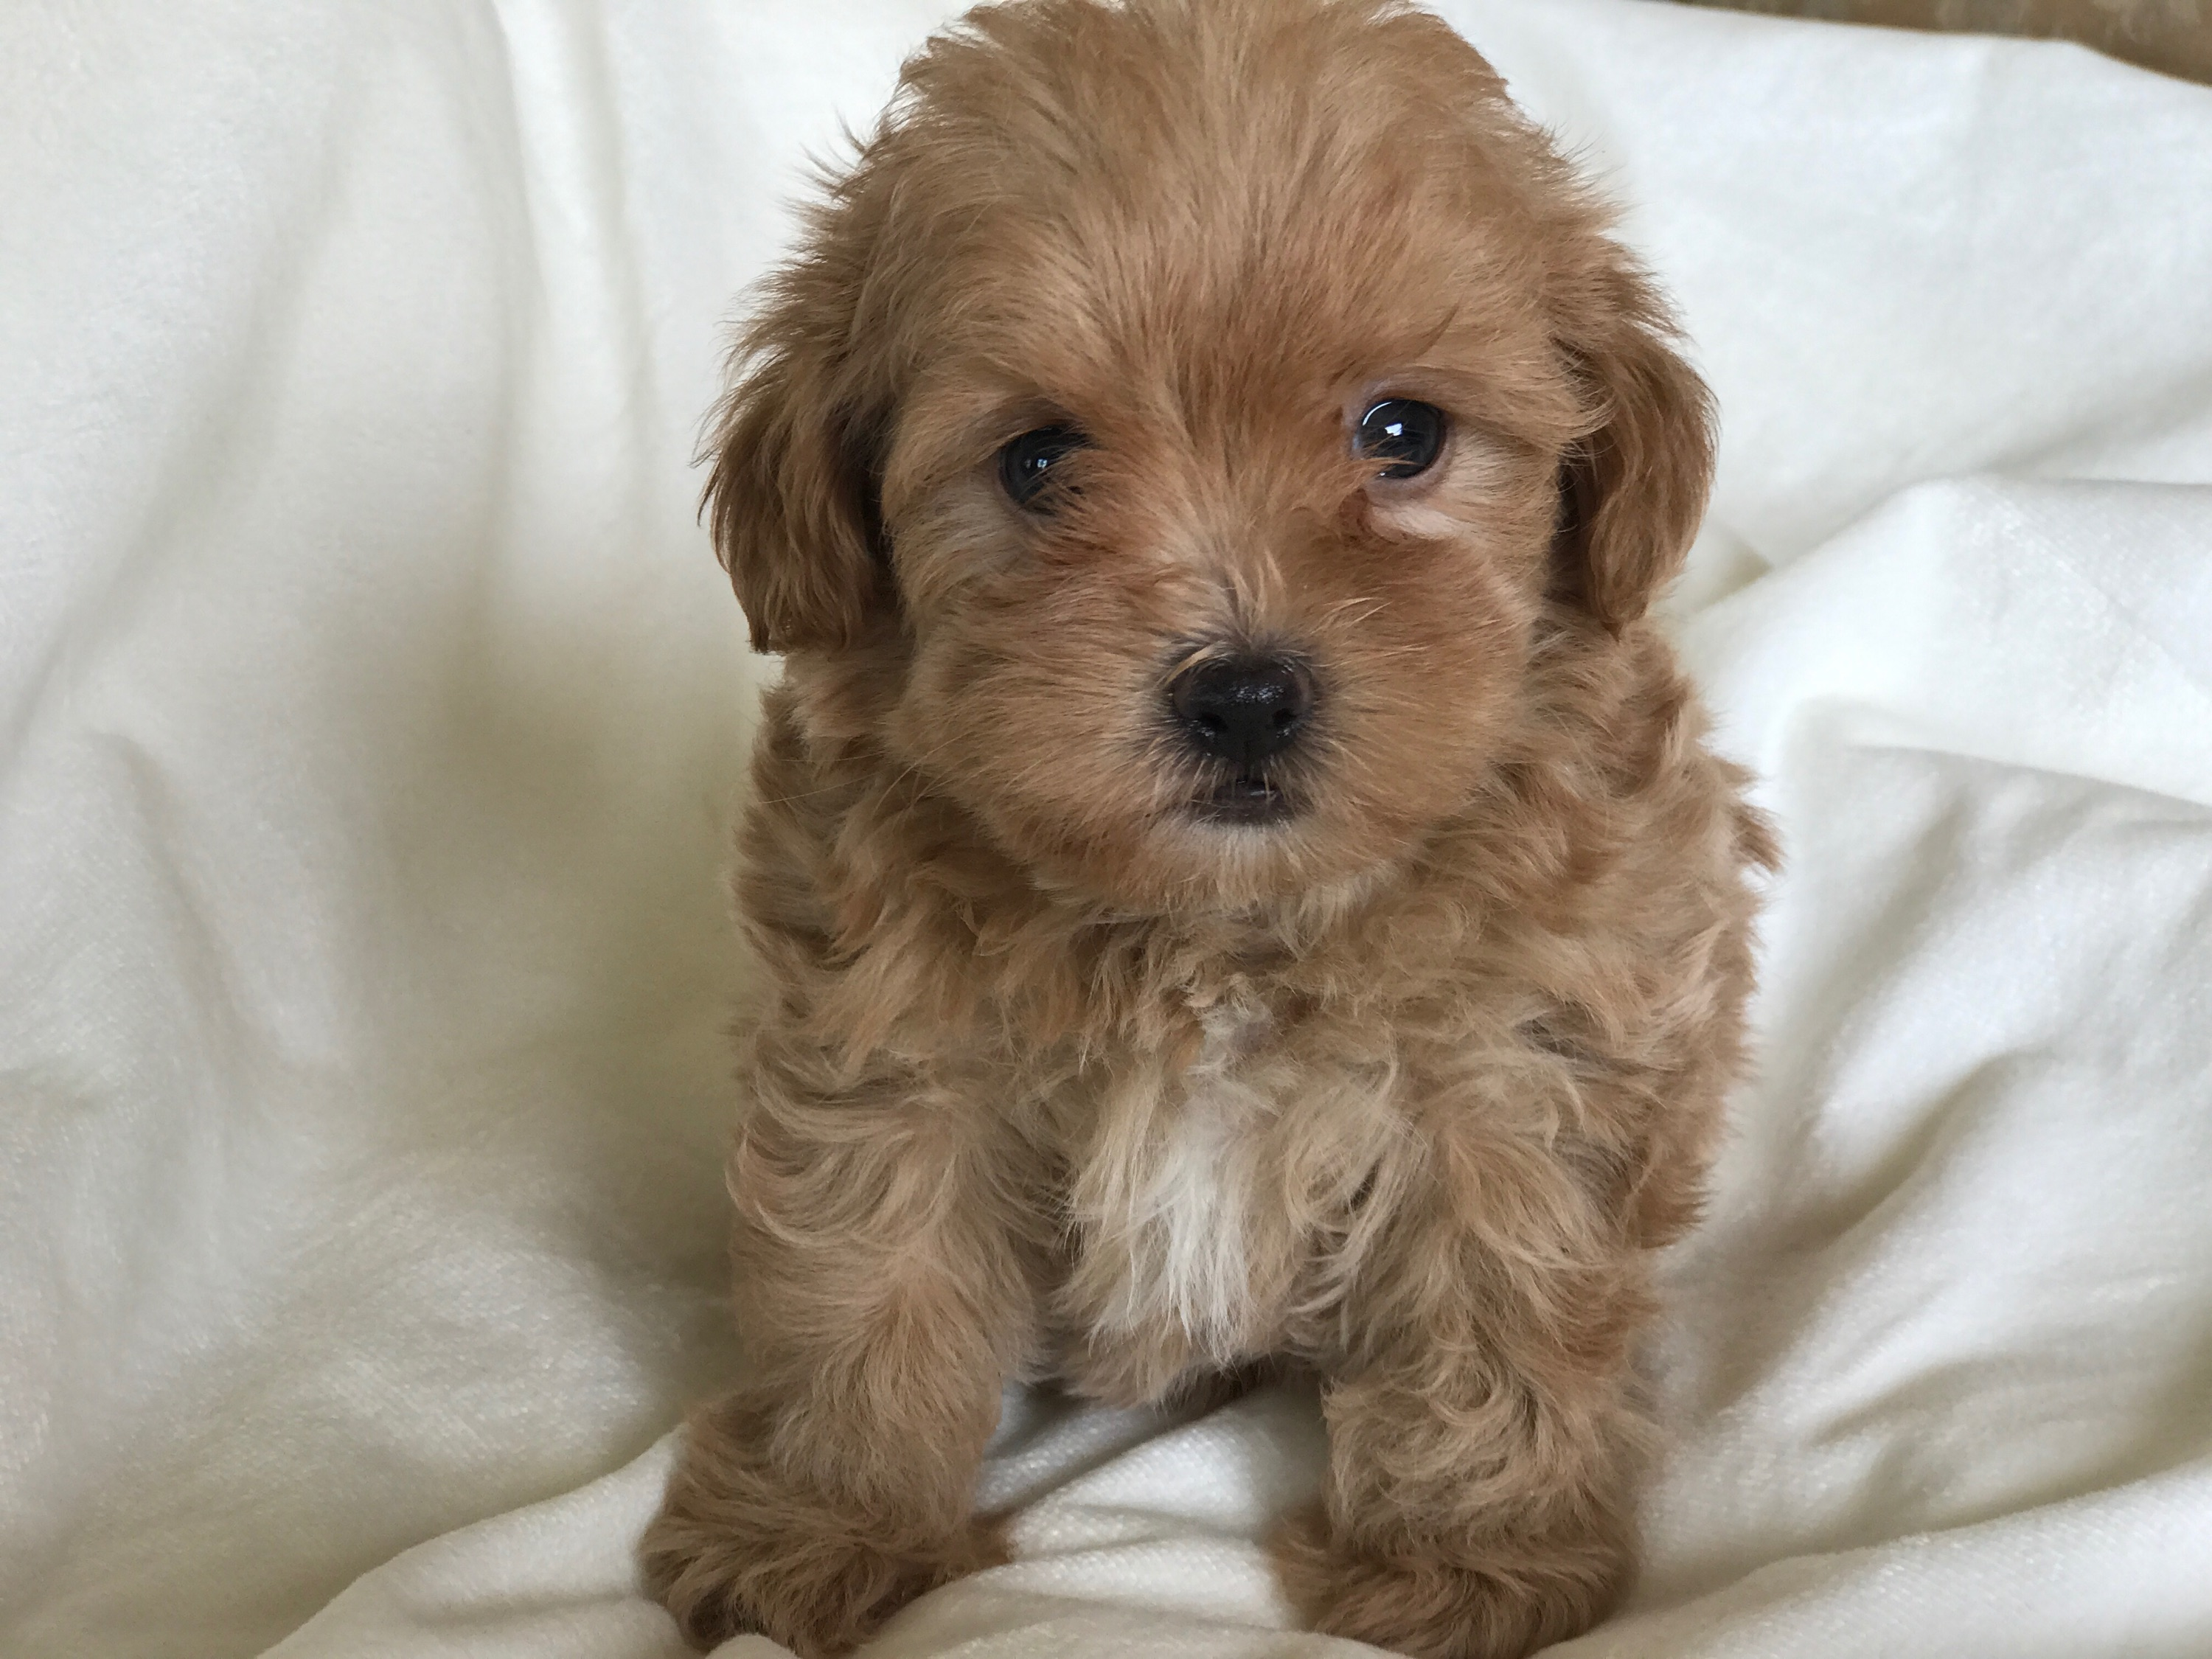 Teddybear maltipoo available up to date on shots dewormEXPECTED TO BE 6LBS20 years experience h